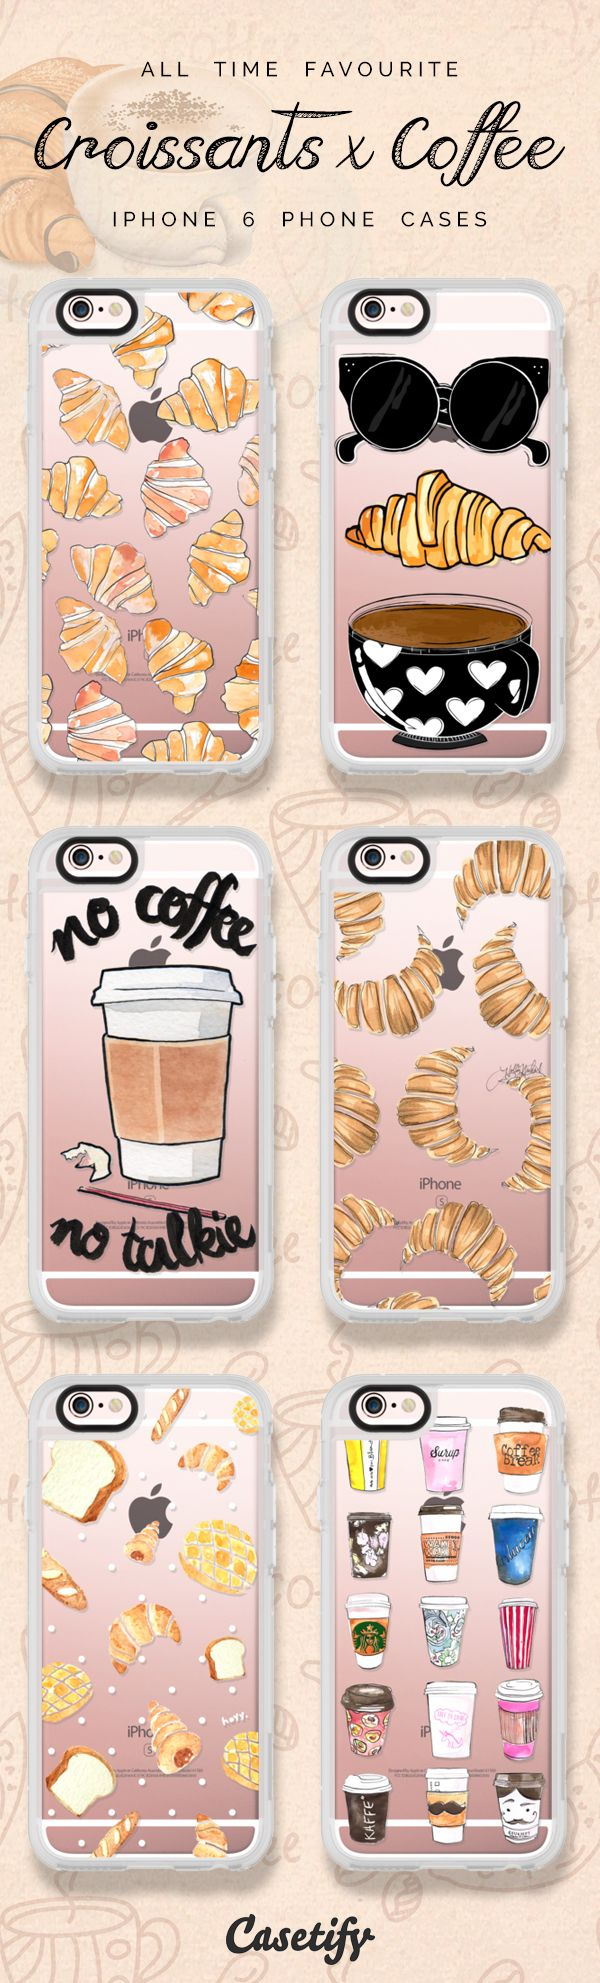 All time favourite coffee and croissant iPhone 6 protective phone case designs | Click through to see more iPhone phone case designs >>> www.casetify.com/... #food | Casetify  http://amzn.to/2spd3Ru